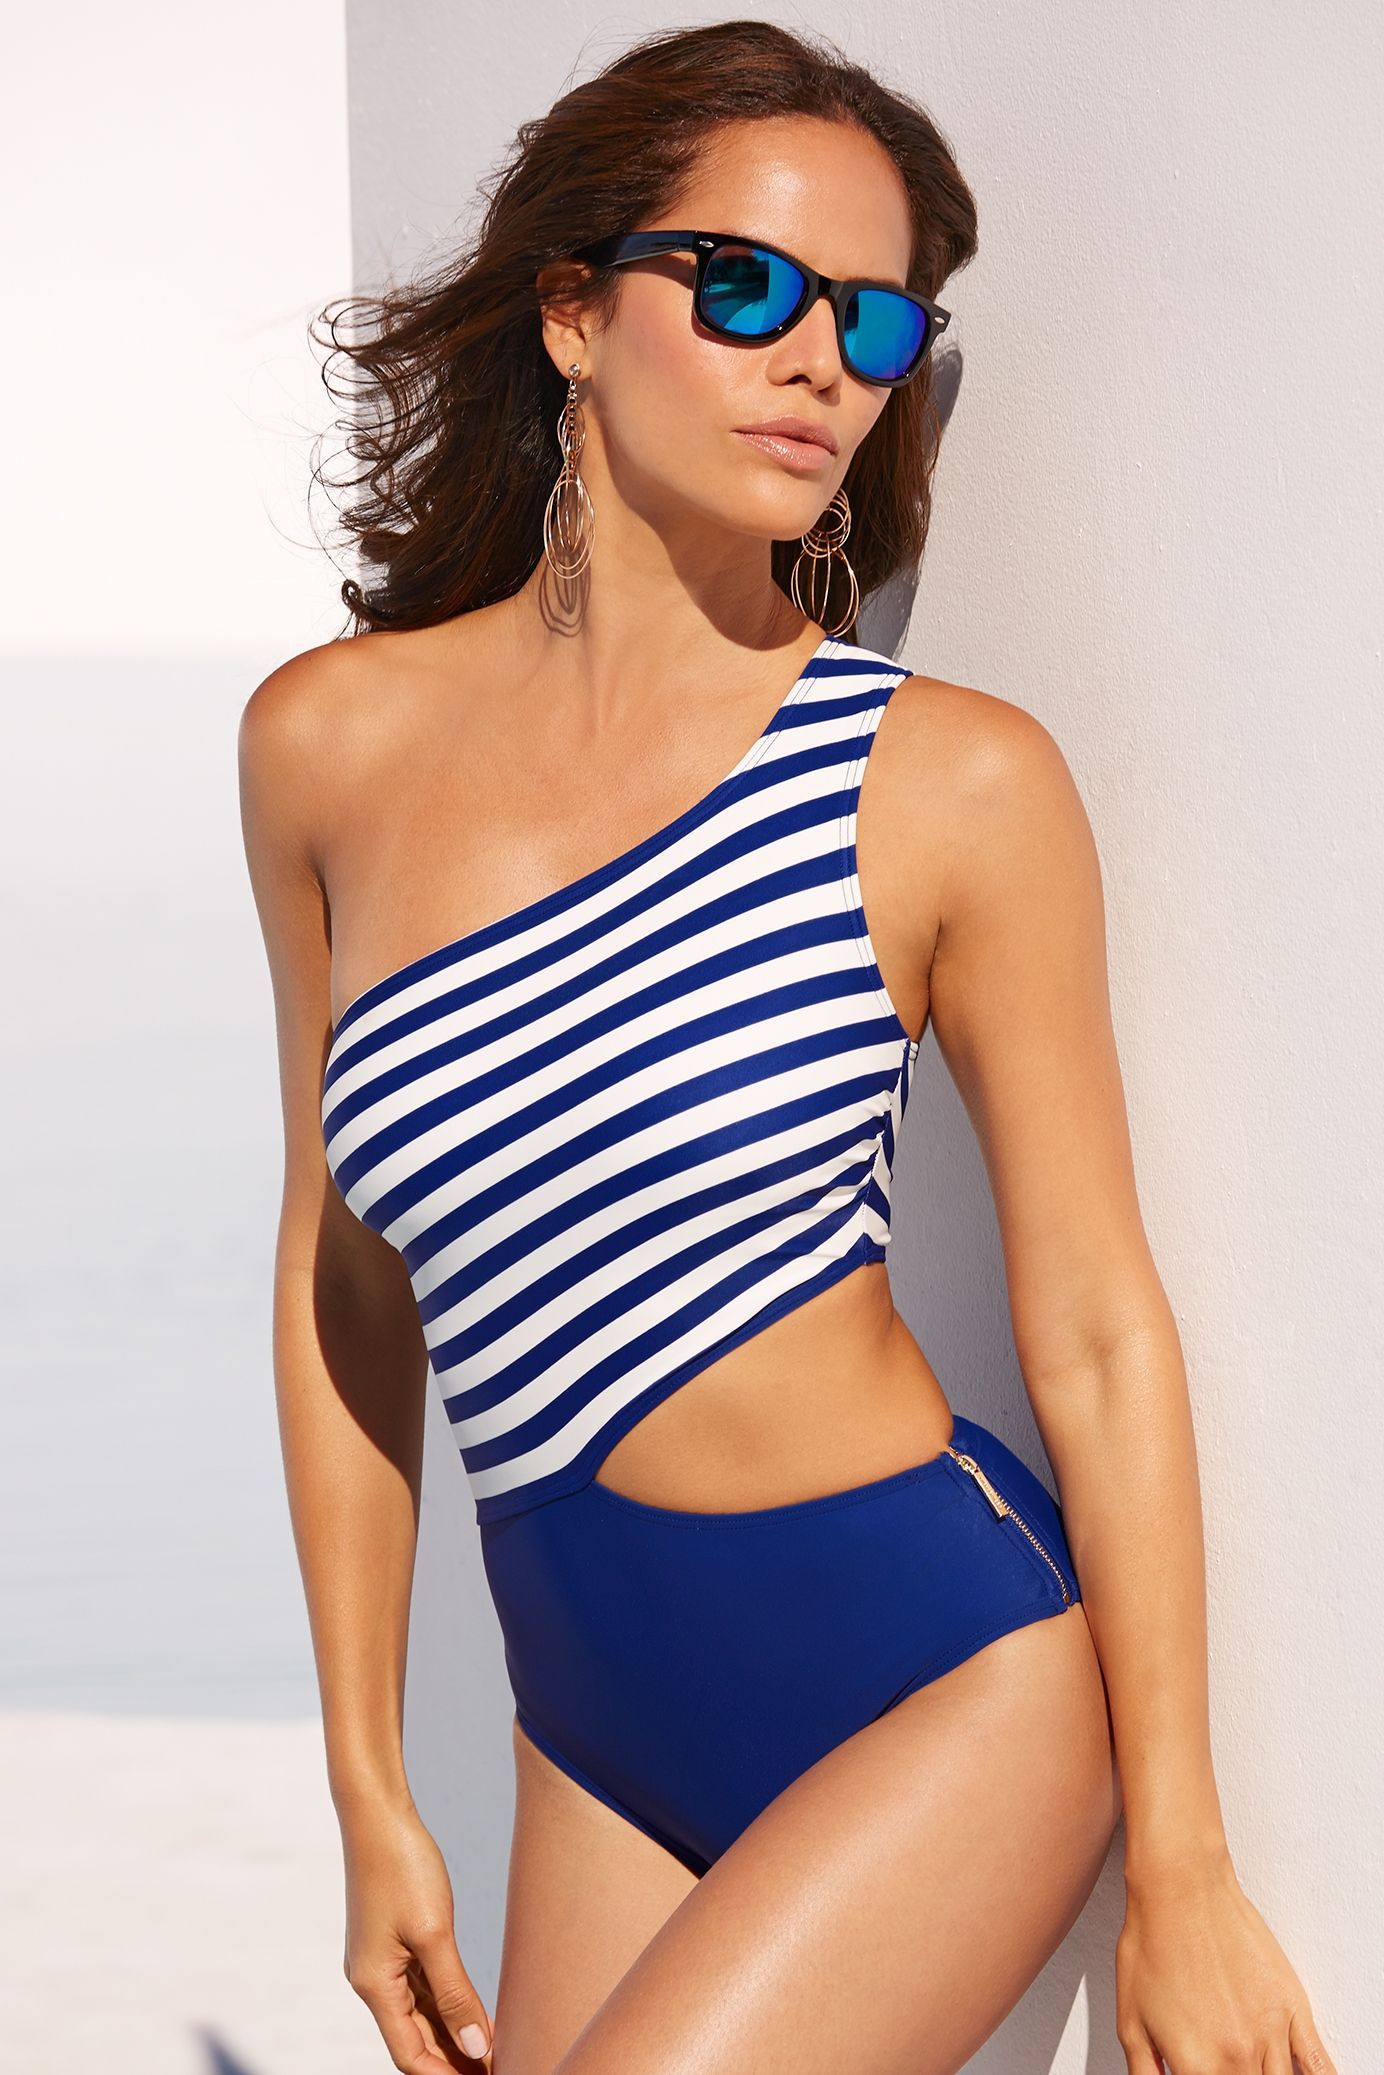 fdf66c8adc0fe Sexy Swimwear | Women's Blue and White One Shoulder Cutout One-Piece  Swimsuit by Michael Kors.